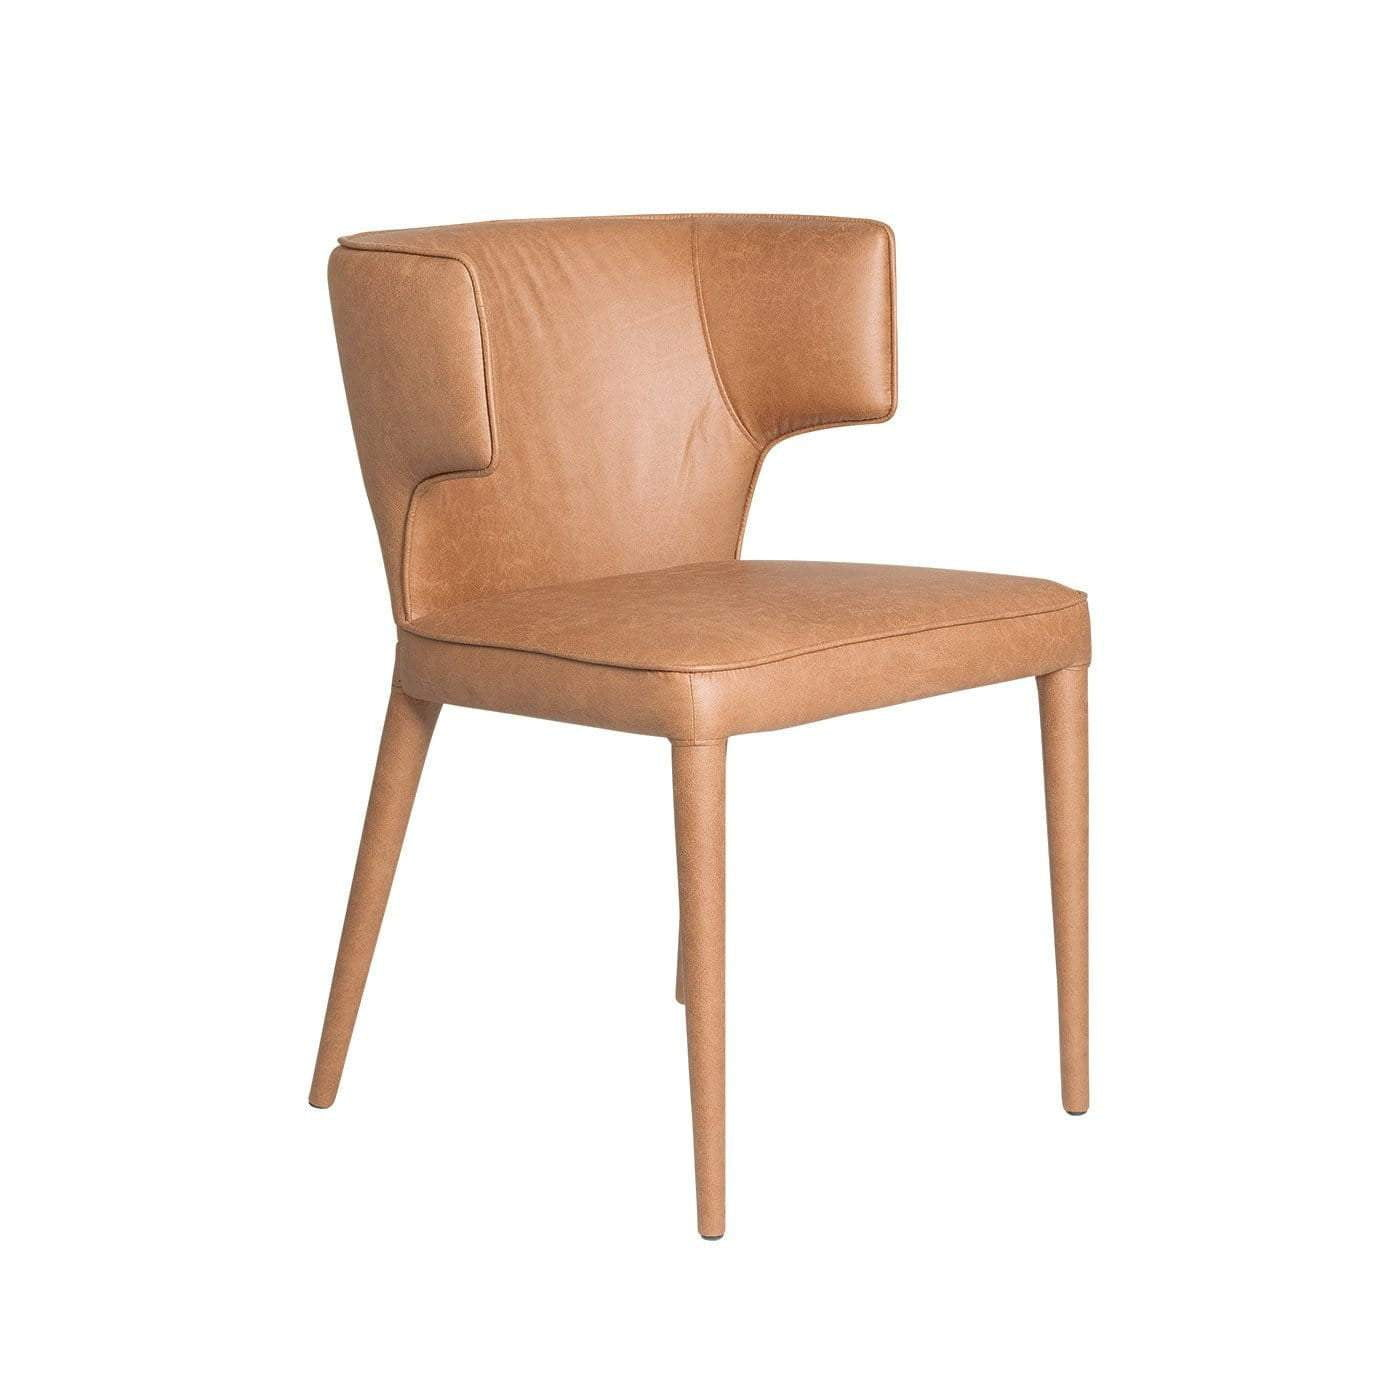 Portofino Tan Leather Dining Chair